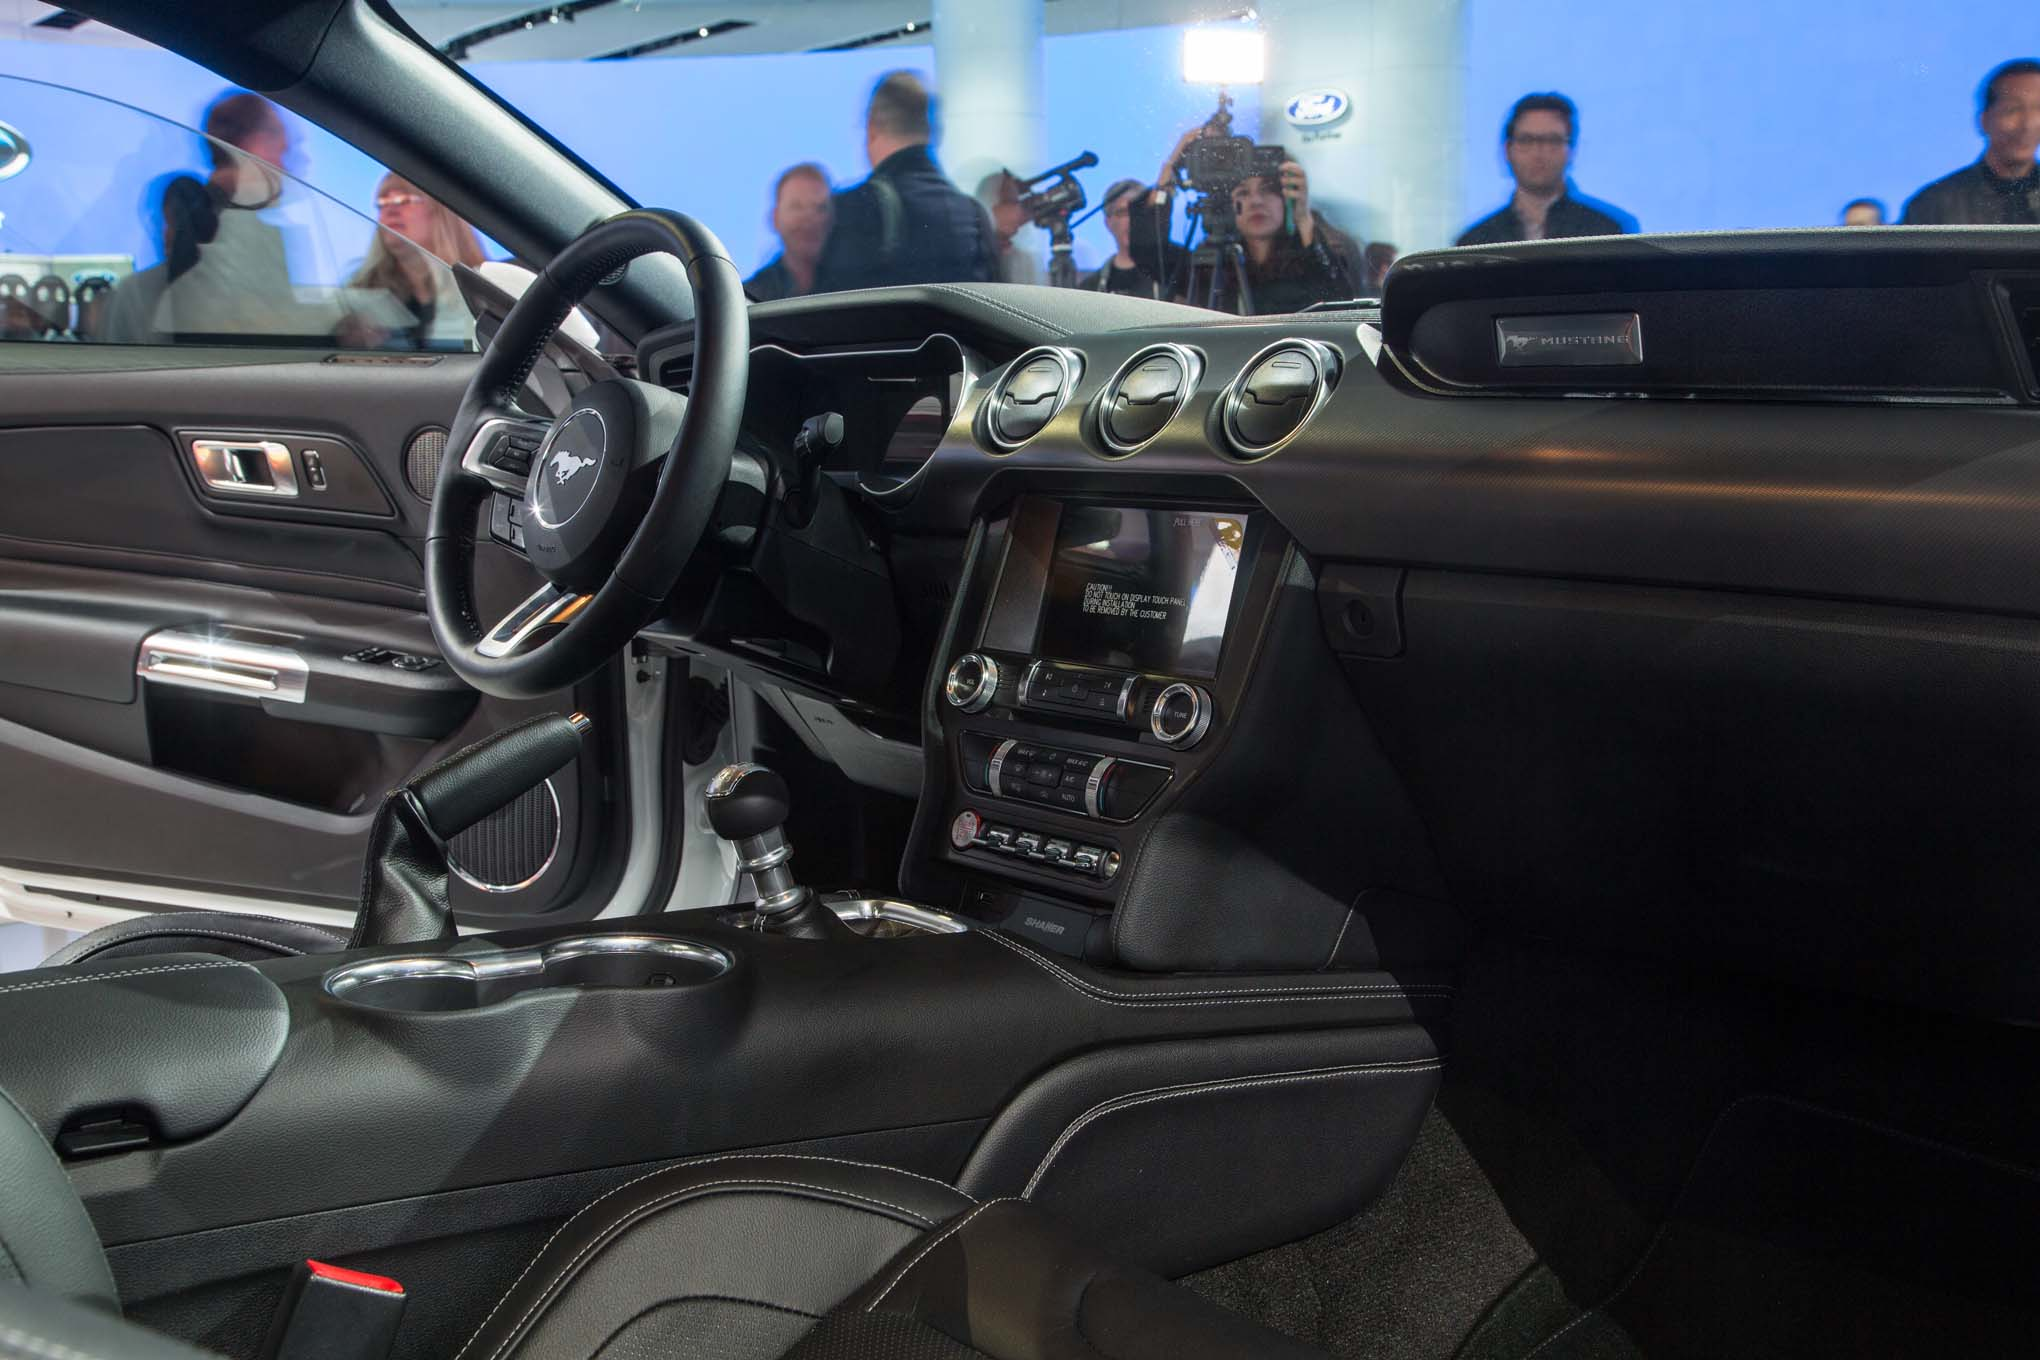 2018 ford mustang gt interior view